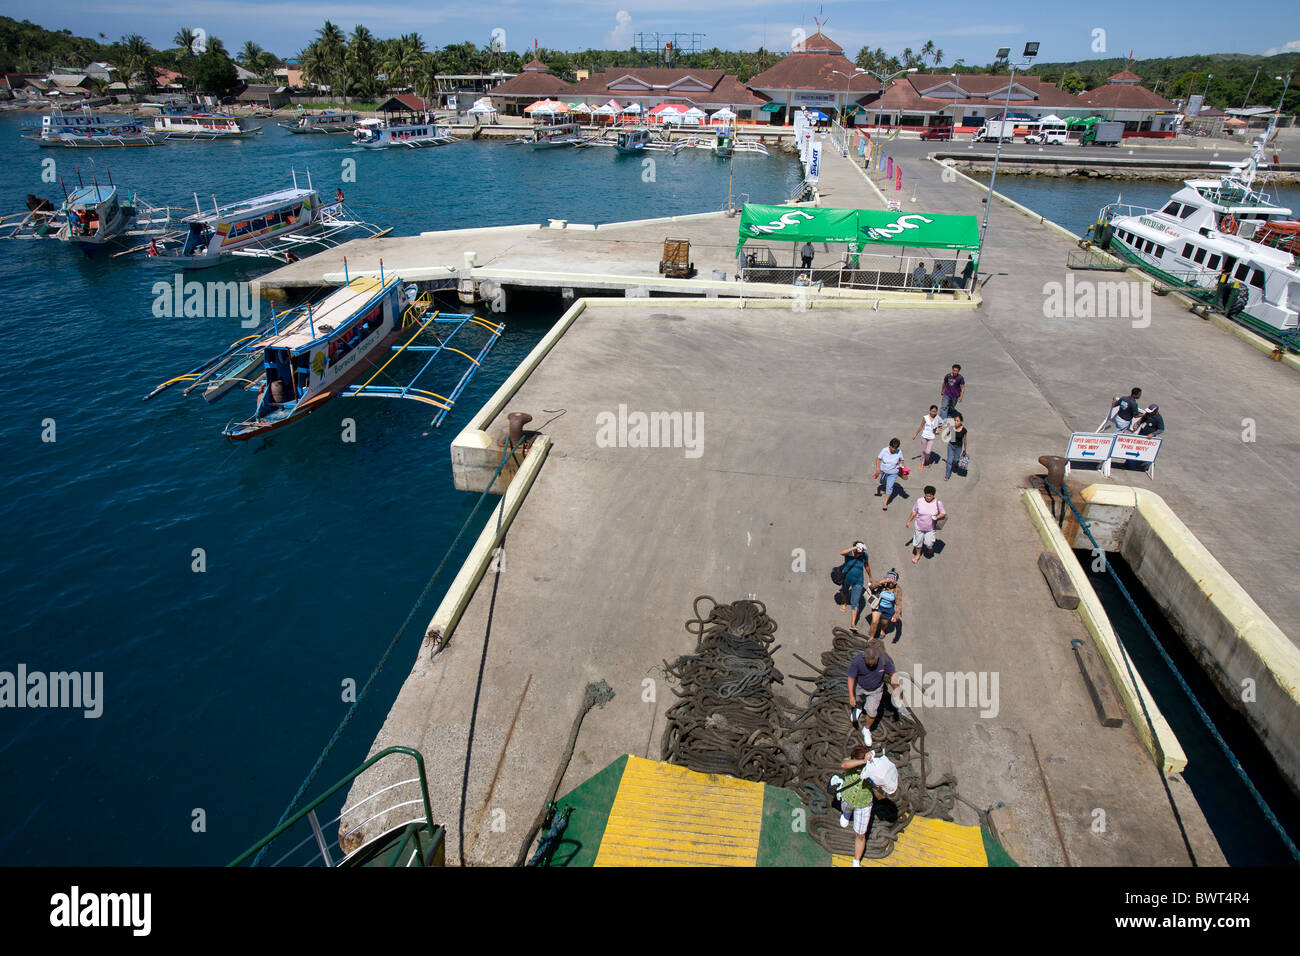 Filipinos board a ferry boat at the Port of Caticlan in Aklan, Philippines. - Stock Image